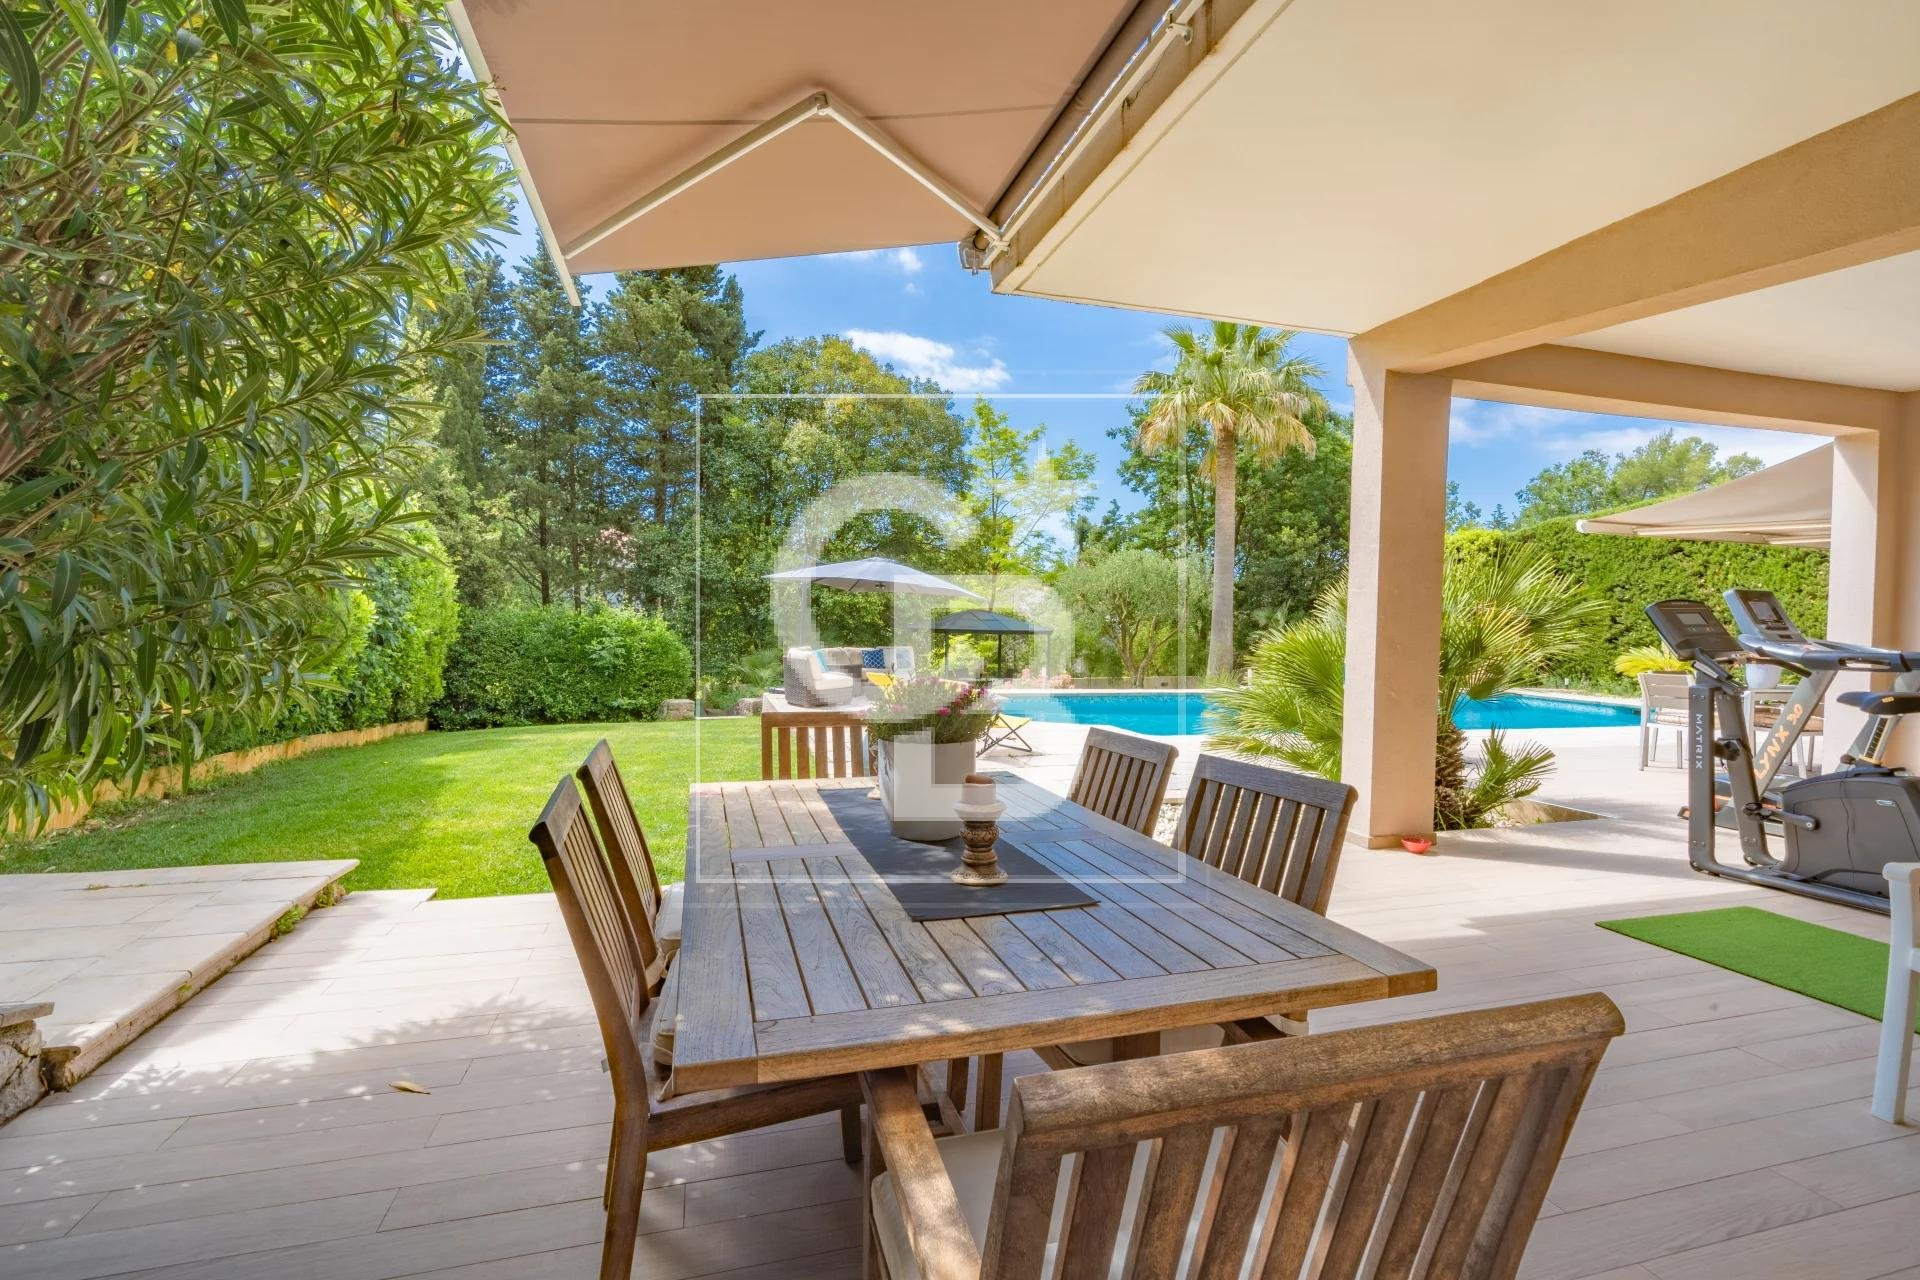 MOUGINS - VILLA - 4 BEDROOMS - CLOSE TO COMMODITIES